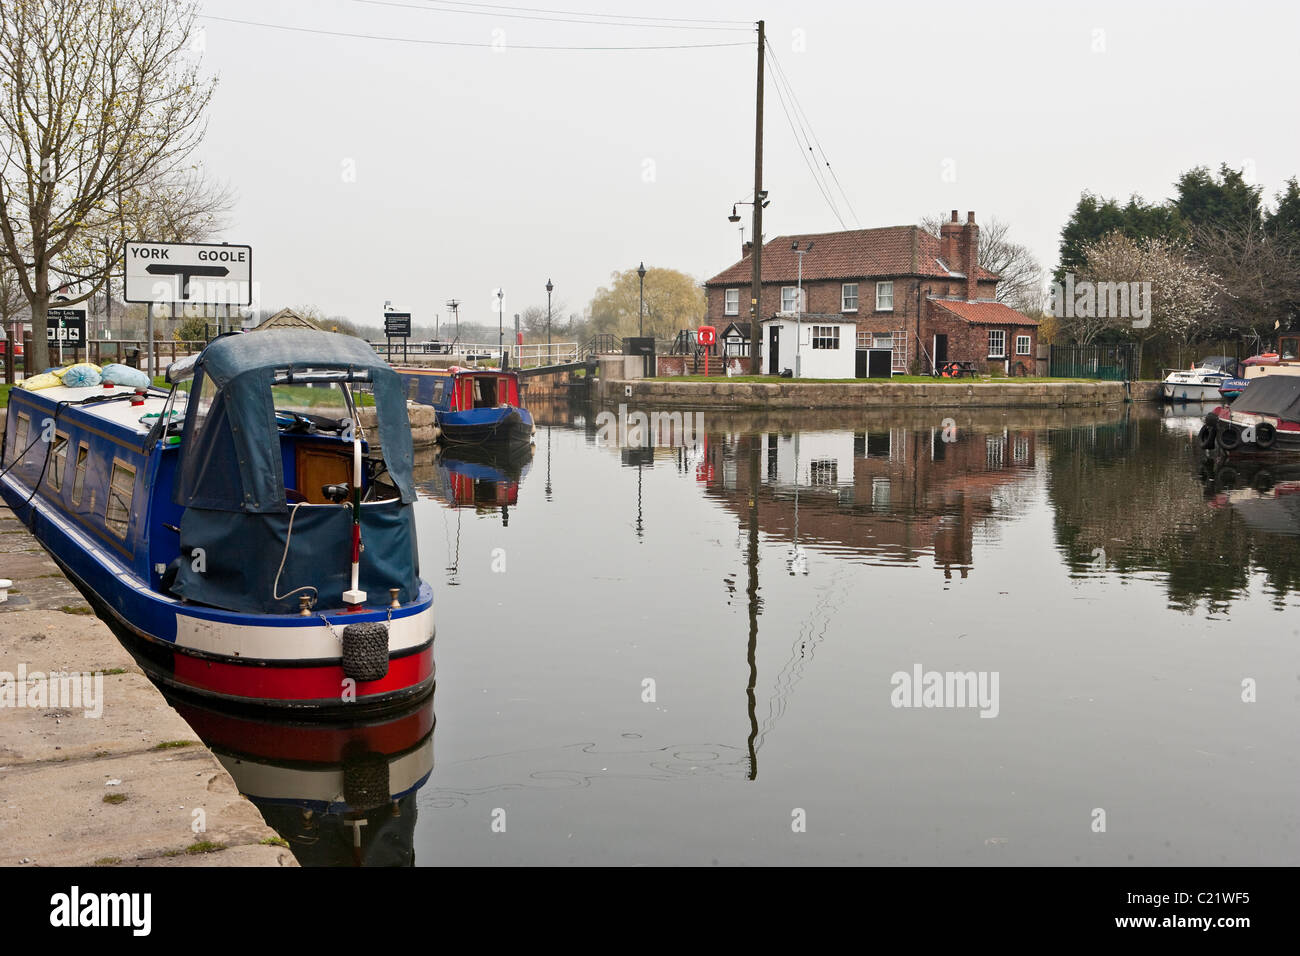 Selby Lock at junction River Ouse, Selby, North Yorkshire. - Stock Image